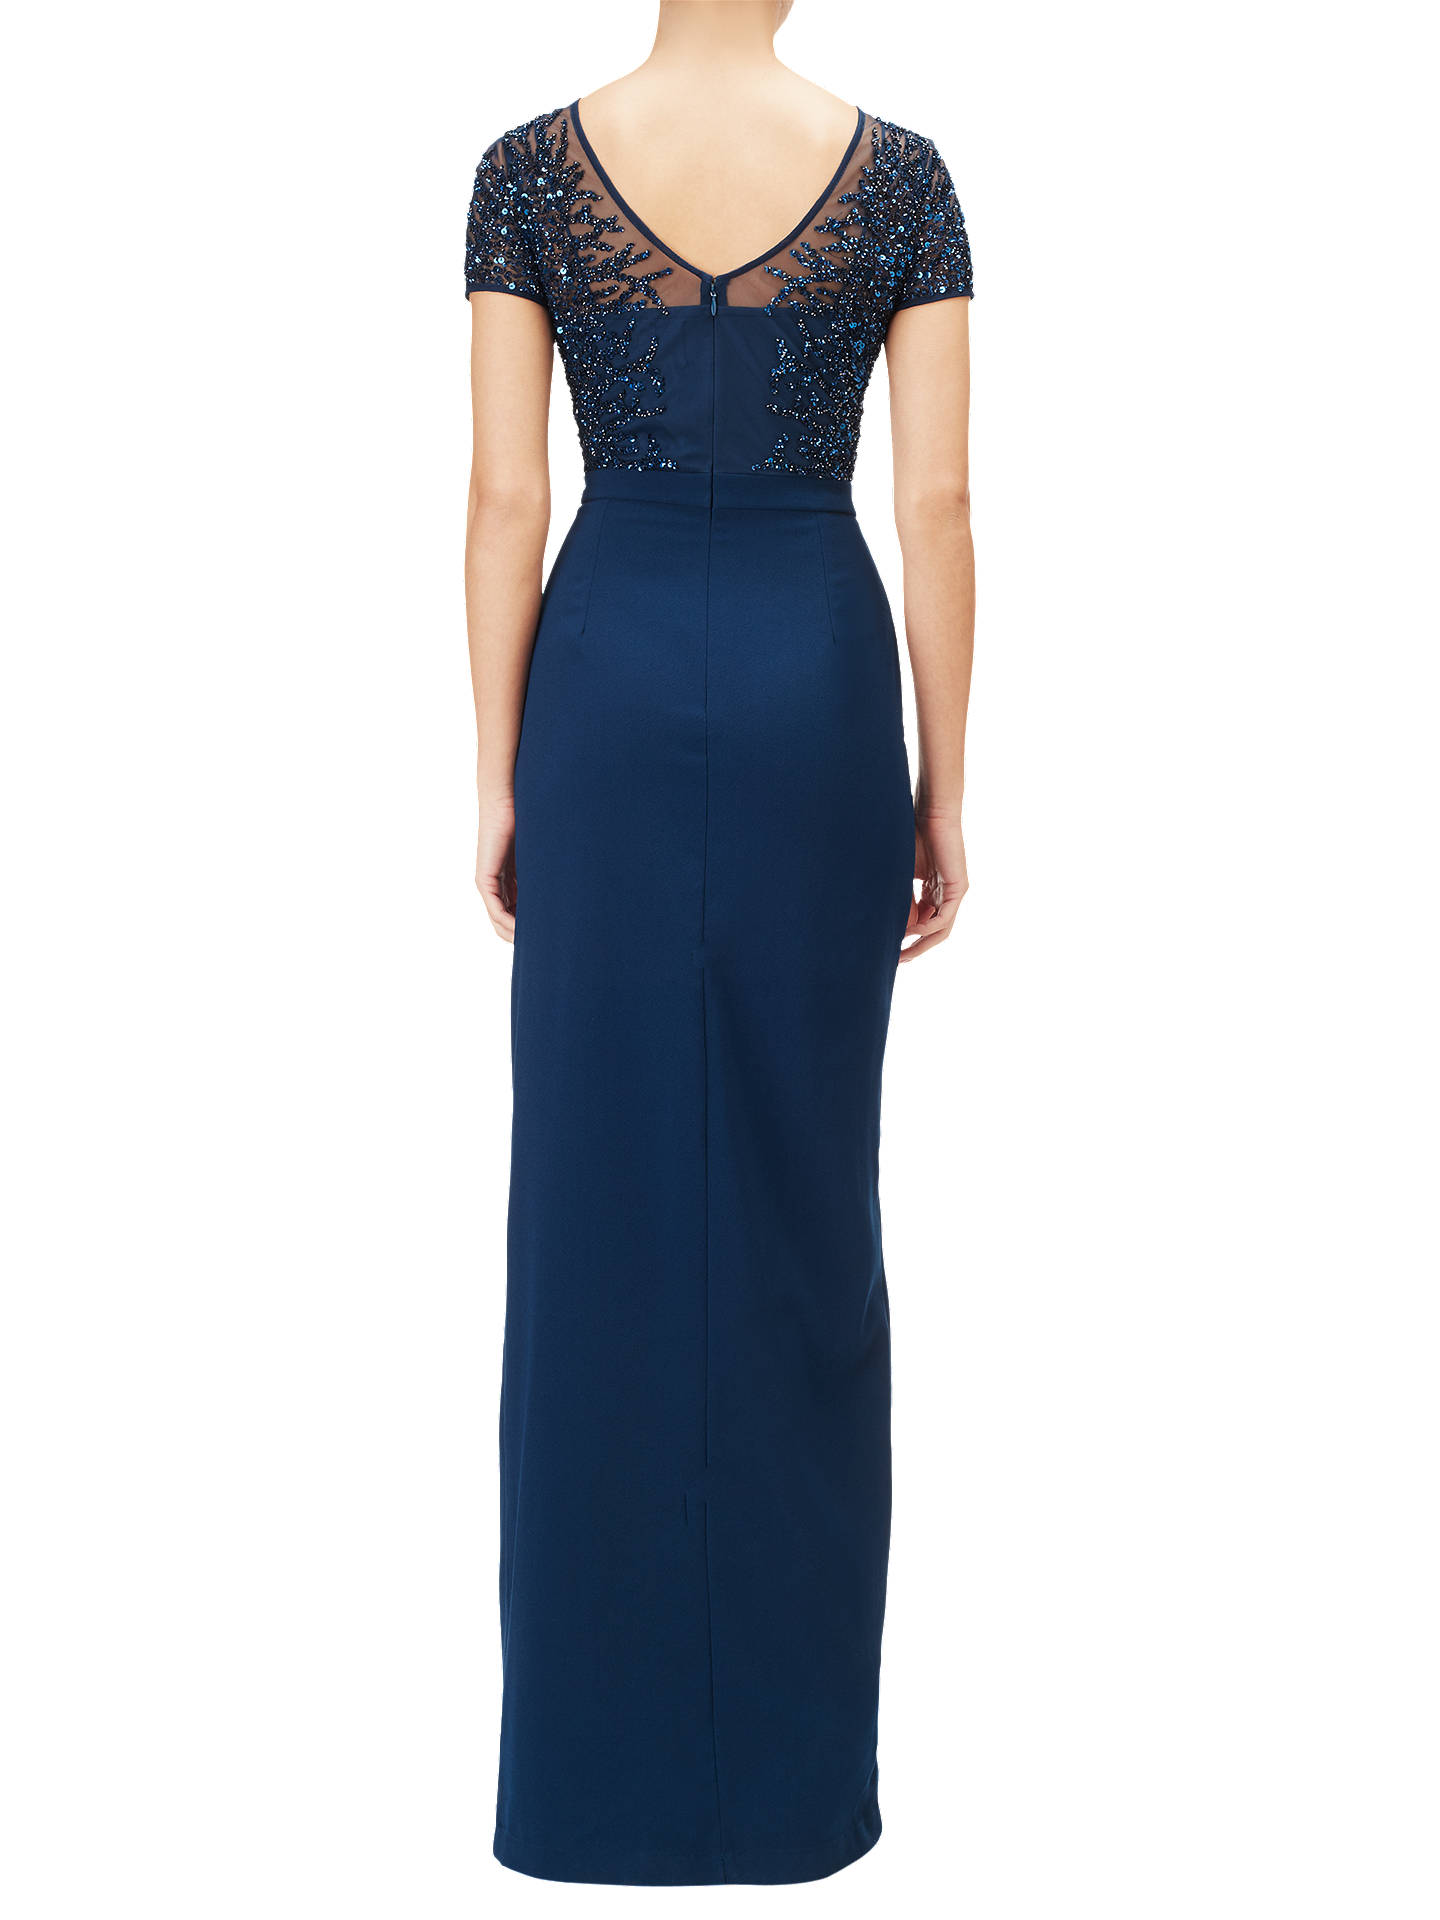 Adrianna Papell Beaded Gown, Deep Blue at John Lewis & Partners